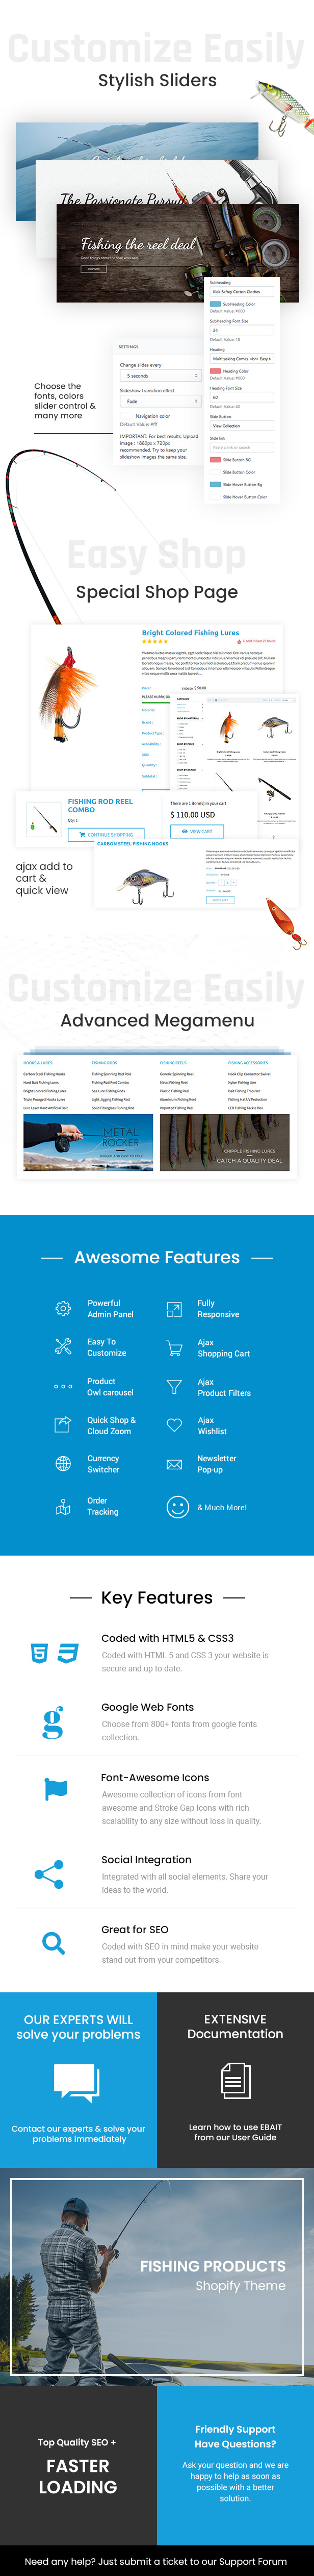 eBait - Fishing Products Store Shopify Theme - 1